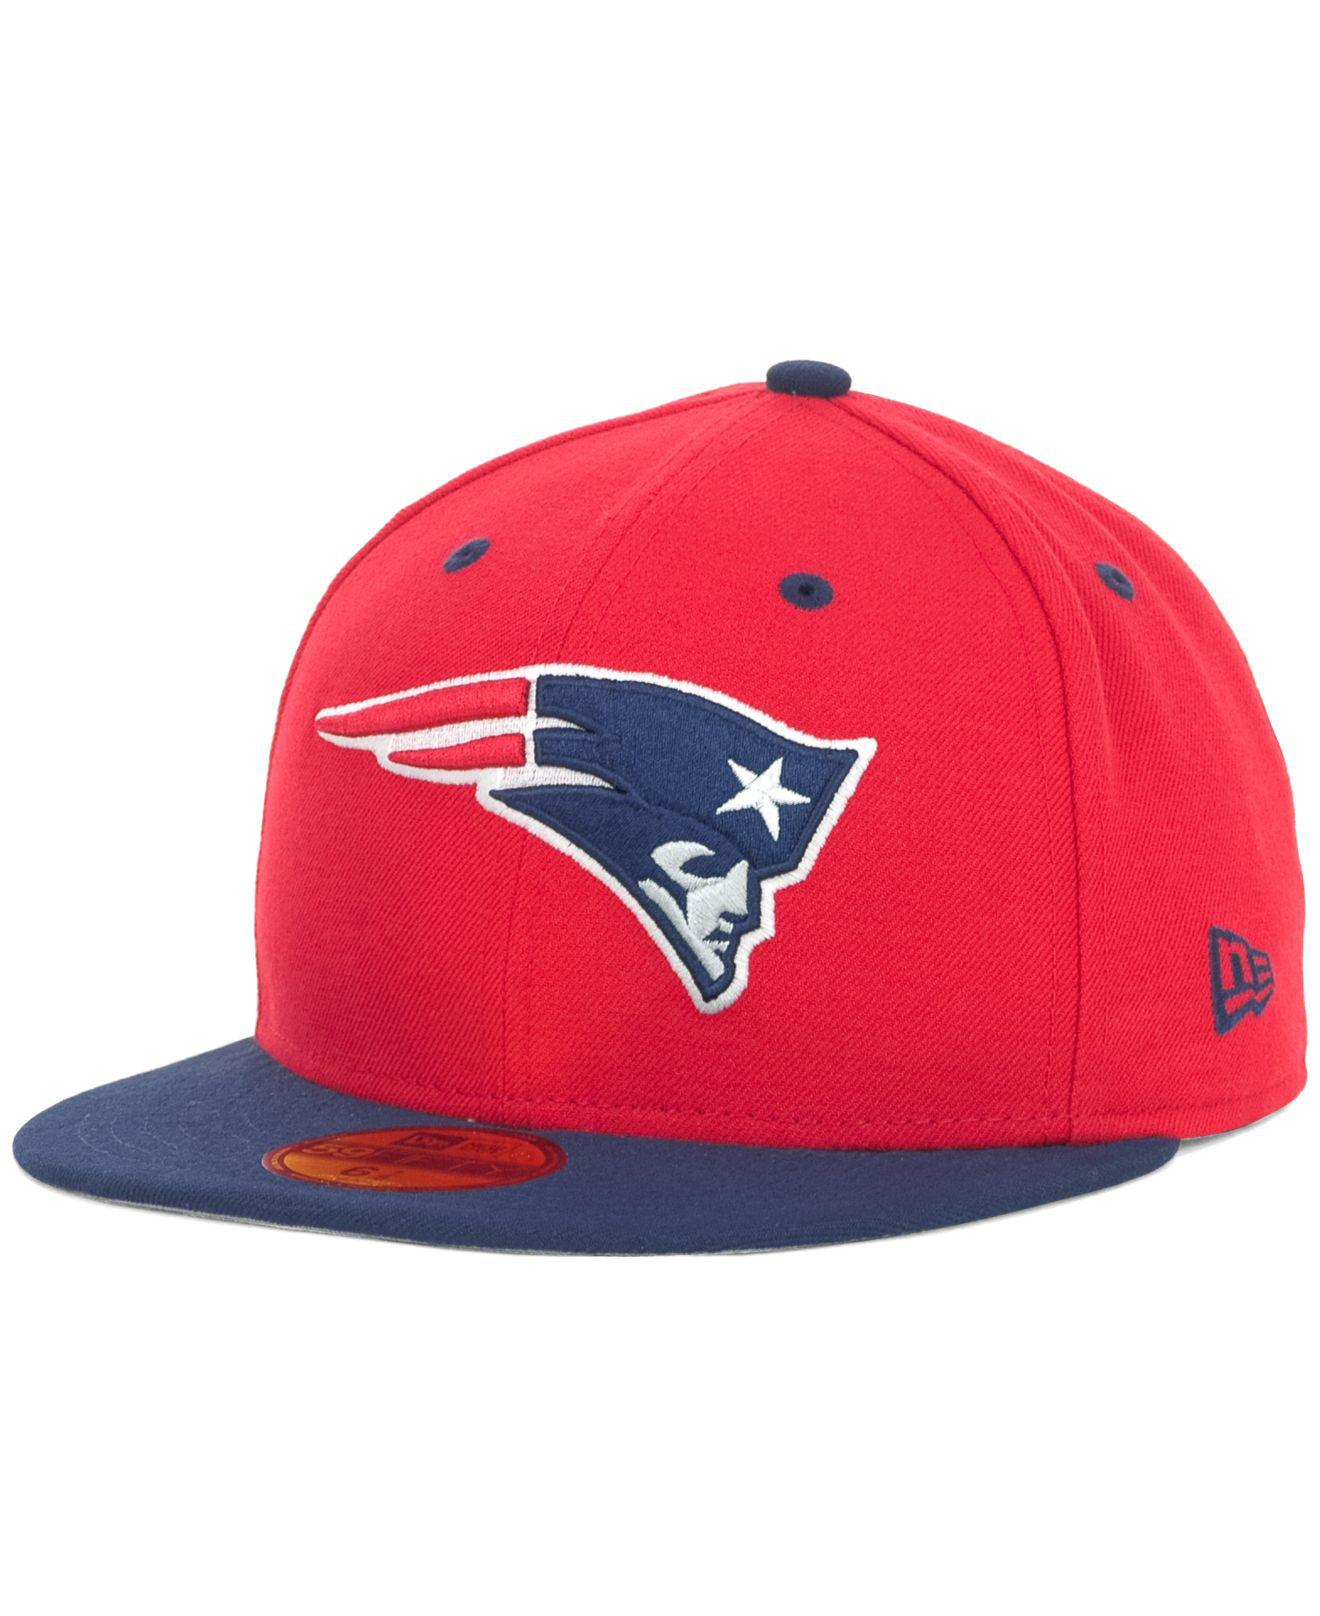 Lyst - KTZ New England Patriots 2 Tone 59fifty Fitted Cap in Red for Men 55c20cffc1fc